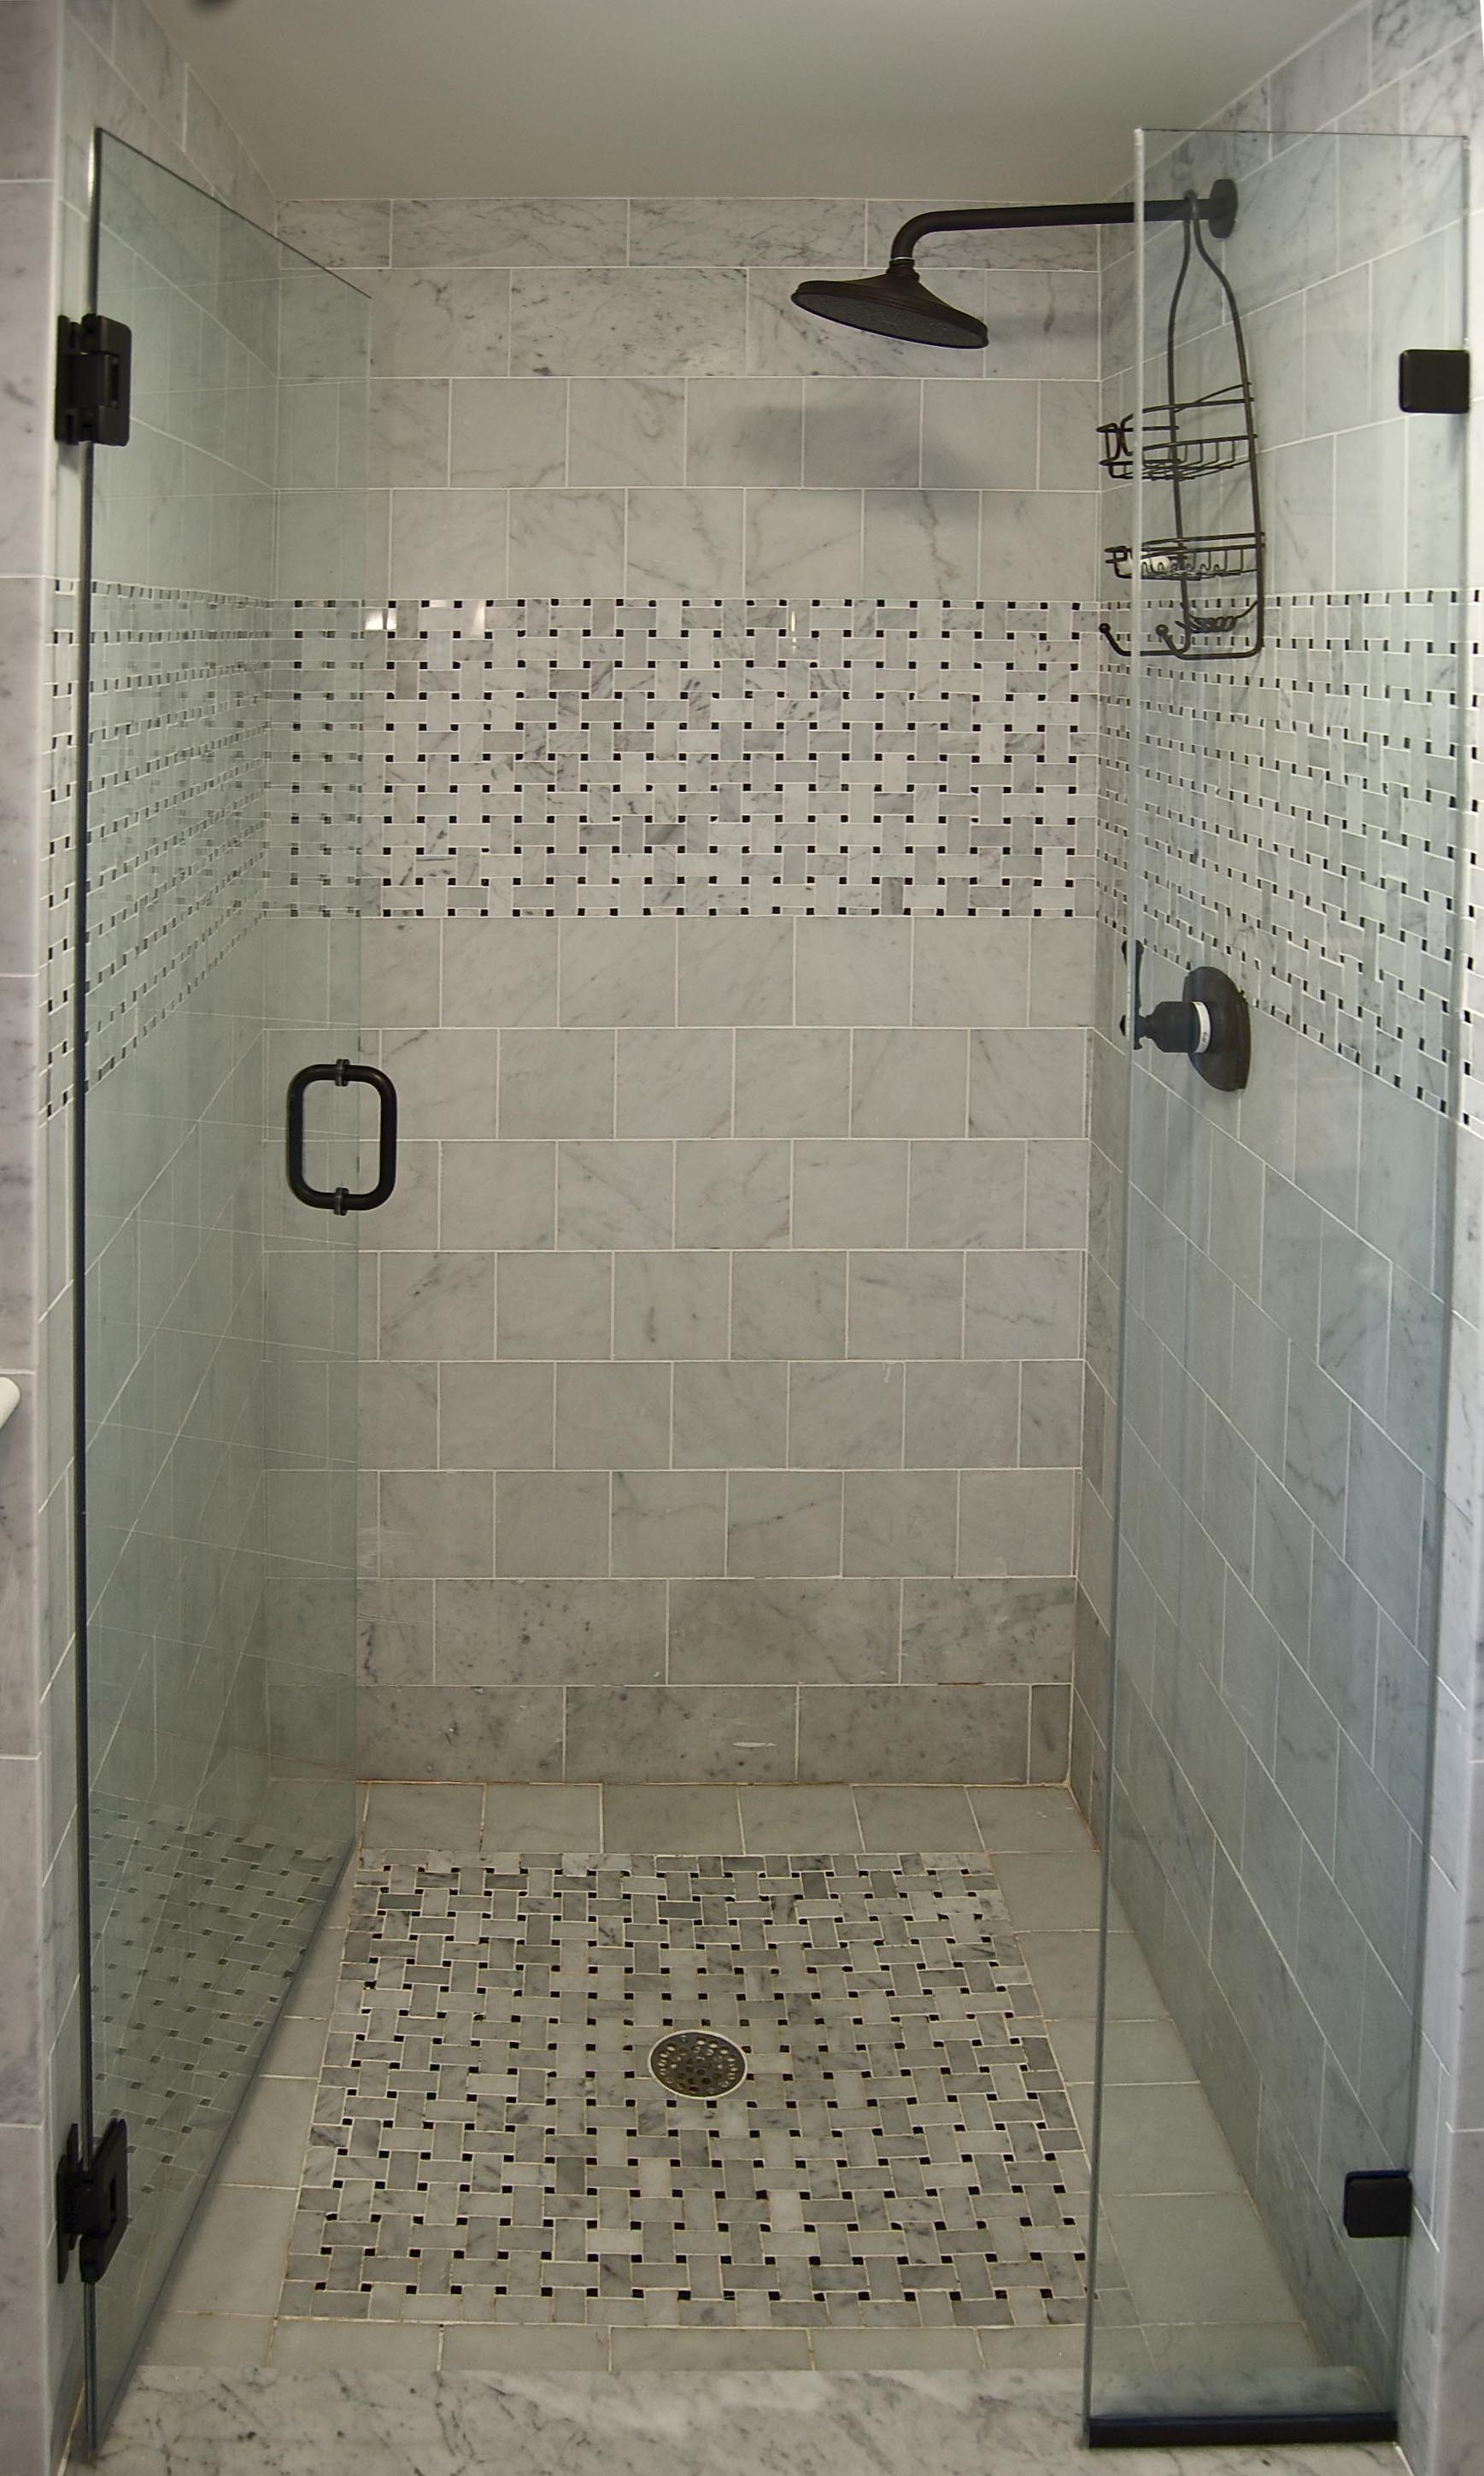 Bathroom Remodeling Pictures - Home